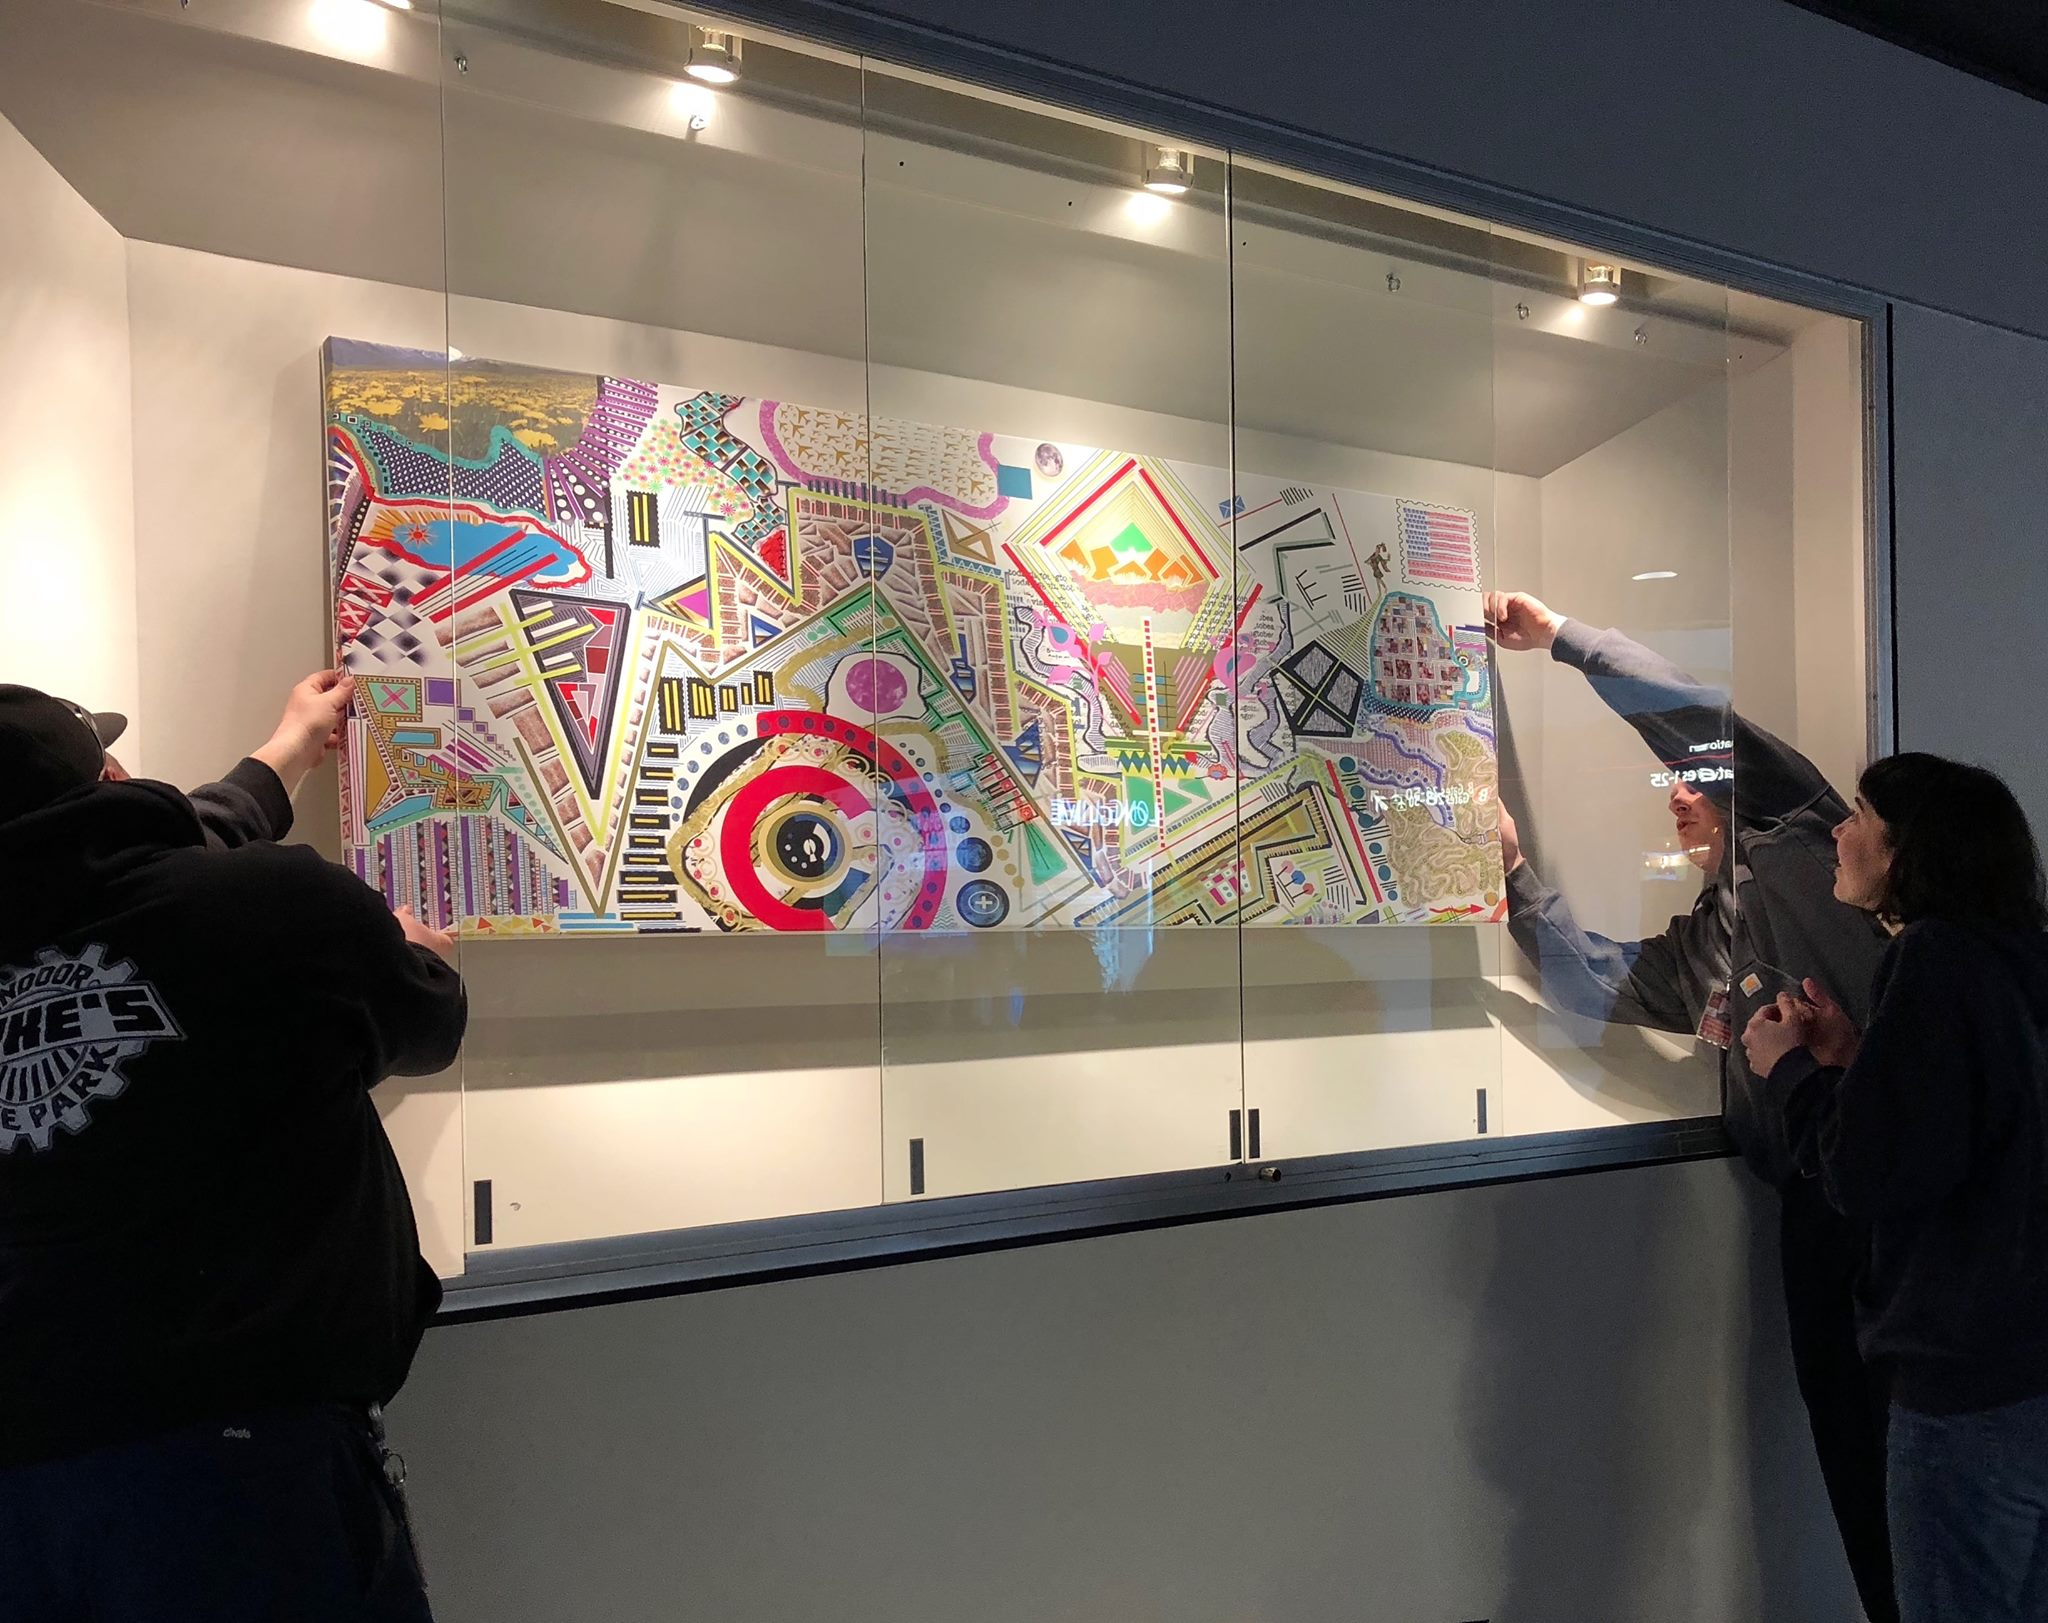 THE FOOL AT THE PRECIPICE - March 2018 - June 2018Pittsburgh International AirportThe Fool at the Precipice illustrates an earthly and imaginary landscape that incorporates geometric and figurative elements in order to form a symbolic language of shape and color. The Fool, the small figure represented within the drawing, is poised on the edge of the unknown in a world of seemingly endless possibilities.This work symbolizes every traveler's potential at the start of a journey, and the sense of freedom experienced when entering uncharted territories. Mance's work explores the interplay of the conscious and subconscious, and the relationship between nature and human experience. Her use of freehand drawing techniques and spontaneous mark making are implemented in order to avoid the restrictions that may come with self-consciousness and premeditation. Her unrestrained approach allows for a deeper focus on the ways in which we pass time, our idiosyncrasies, and repetitive rituals.